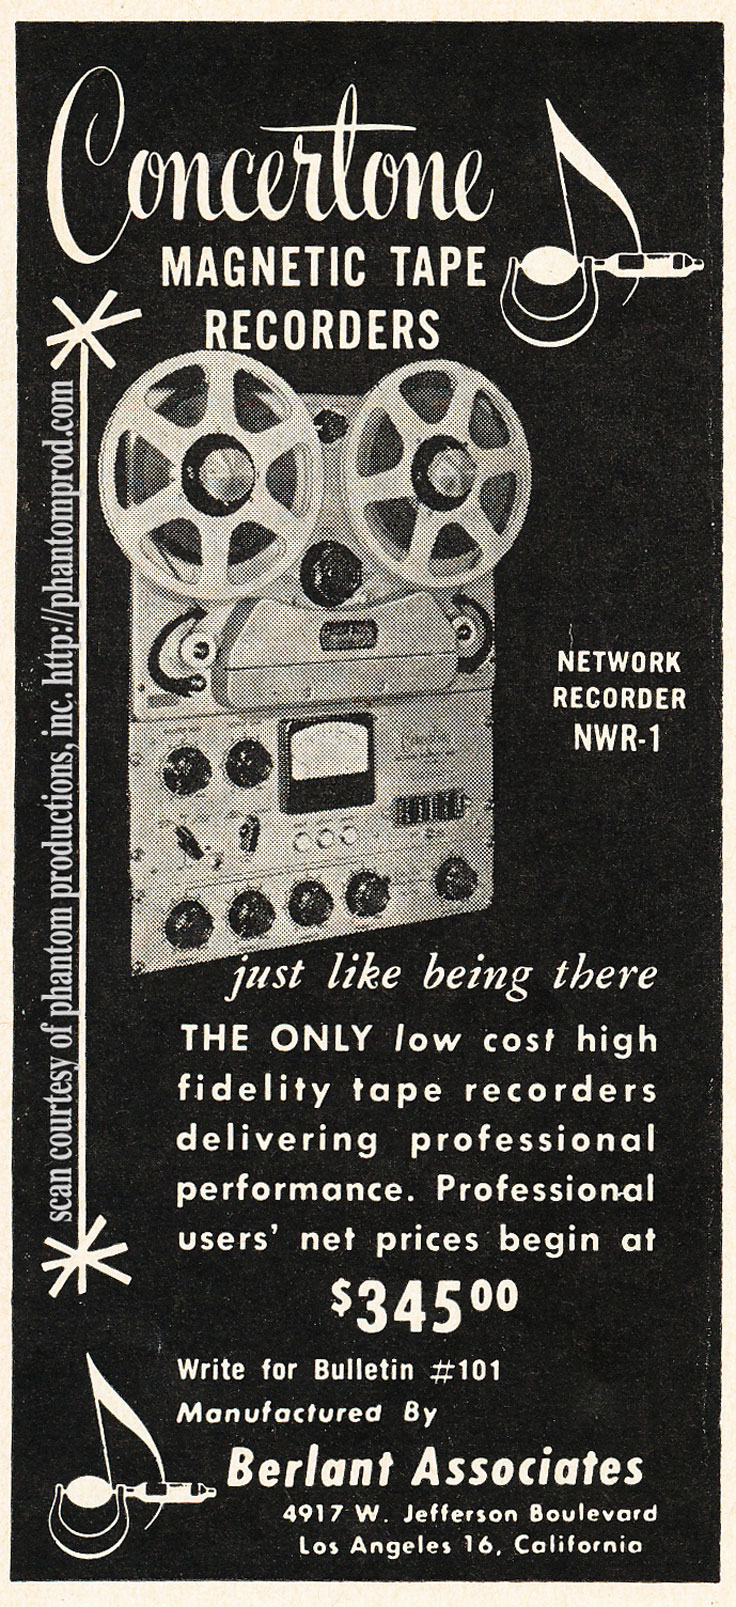 1952 ad for the Berlant Concertone NWR-1 professional reel to reel tape recorder in Reel2ReelTexas.com's vintage recording collection